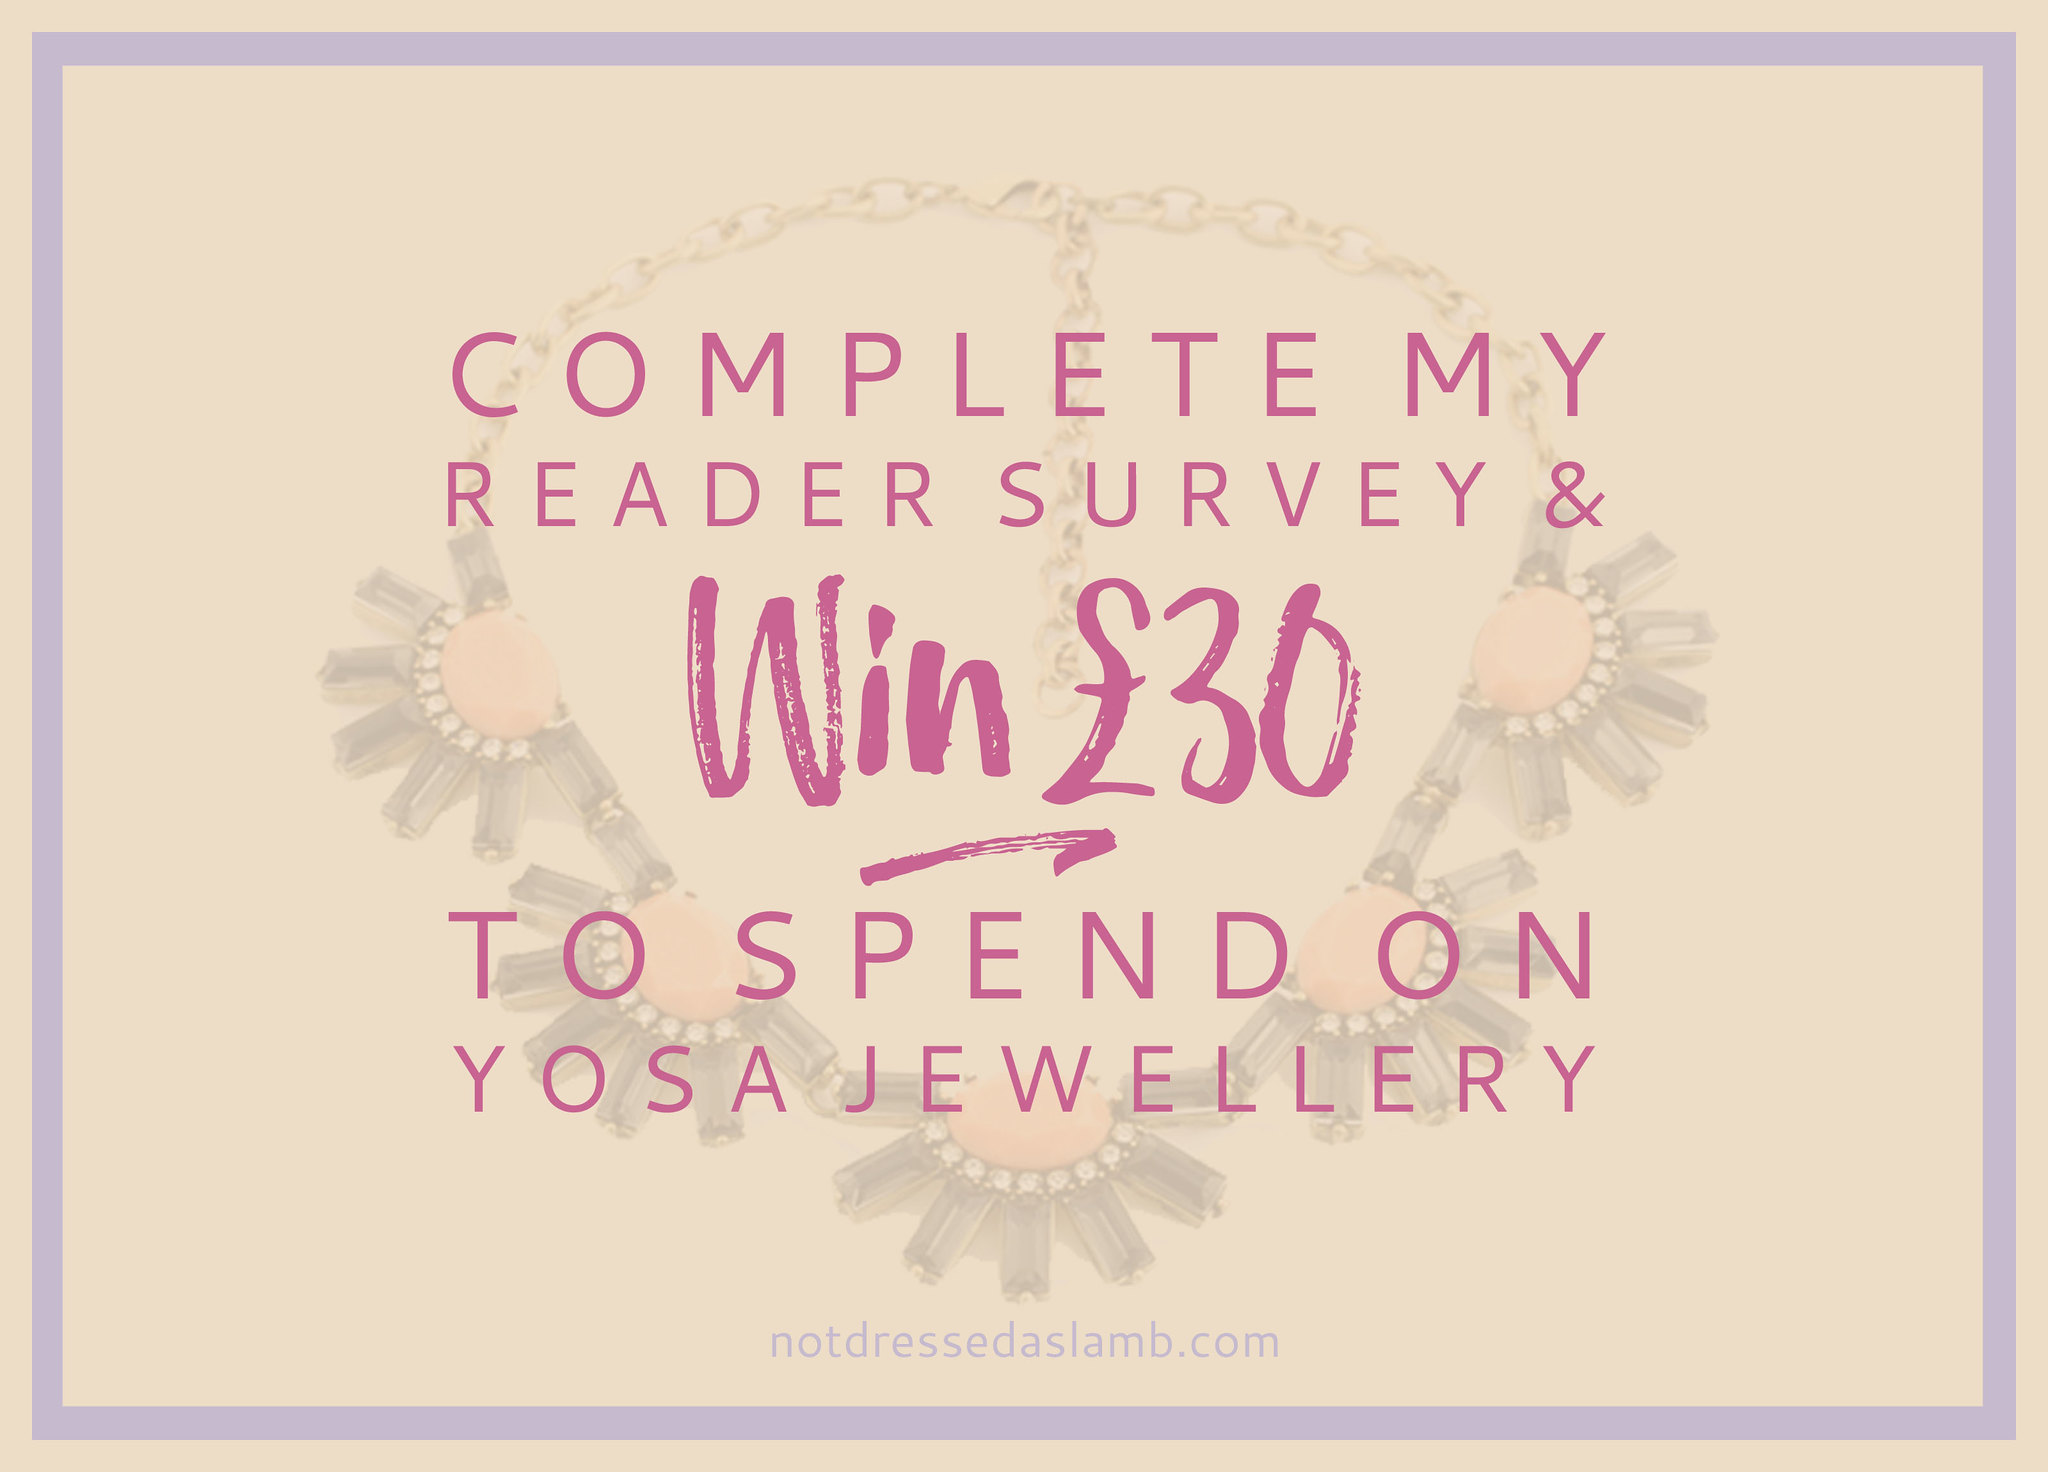 Not Dressed As Lamb | Complete My Reader Survey & Win £30 to Spend on Yosa Jewellery/Accessories